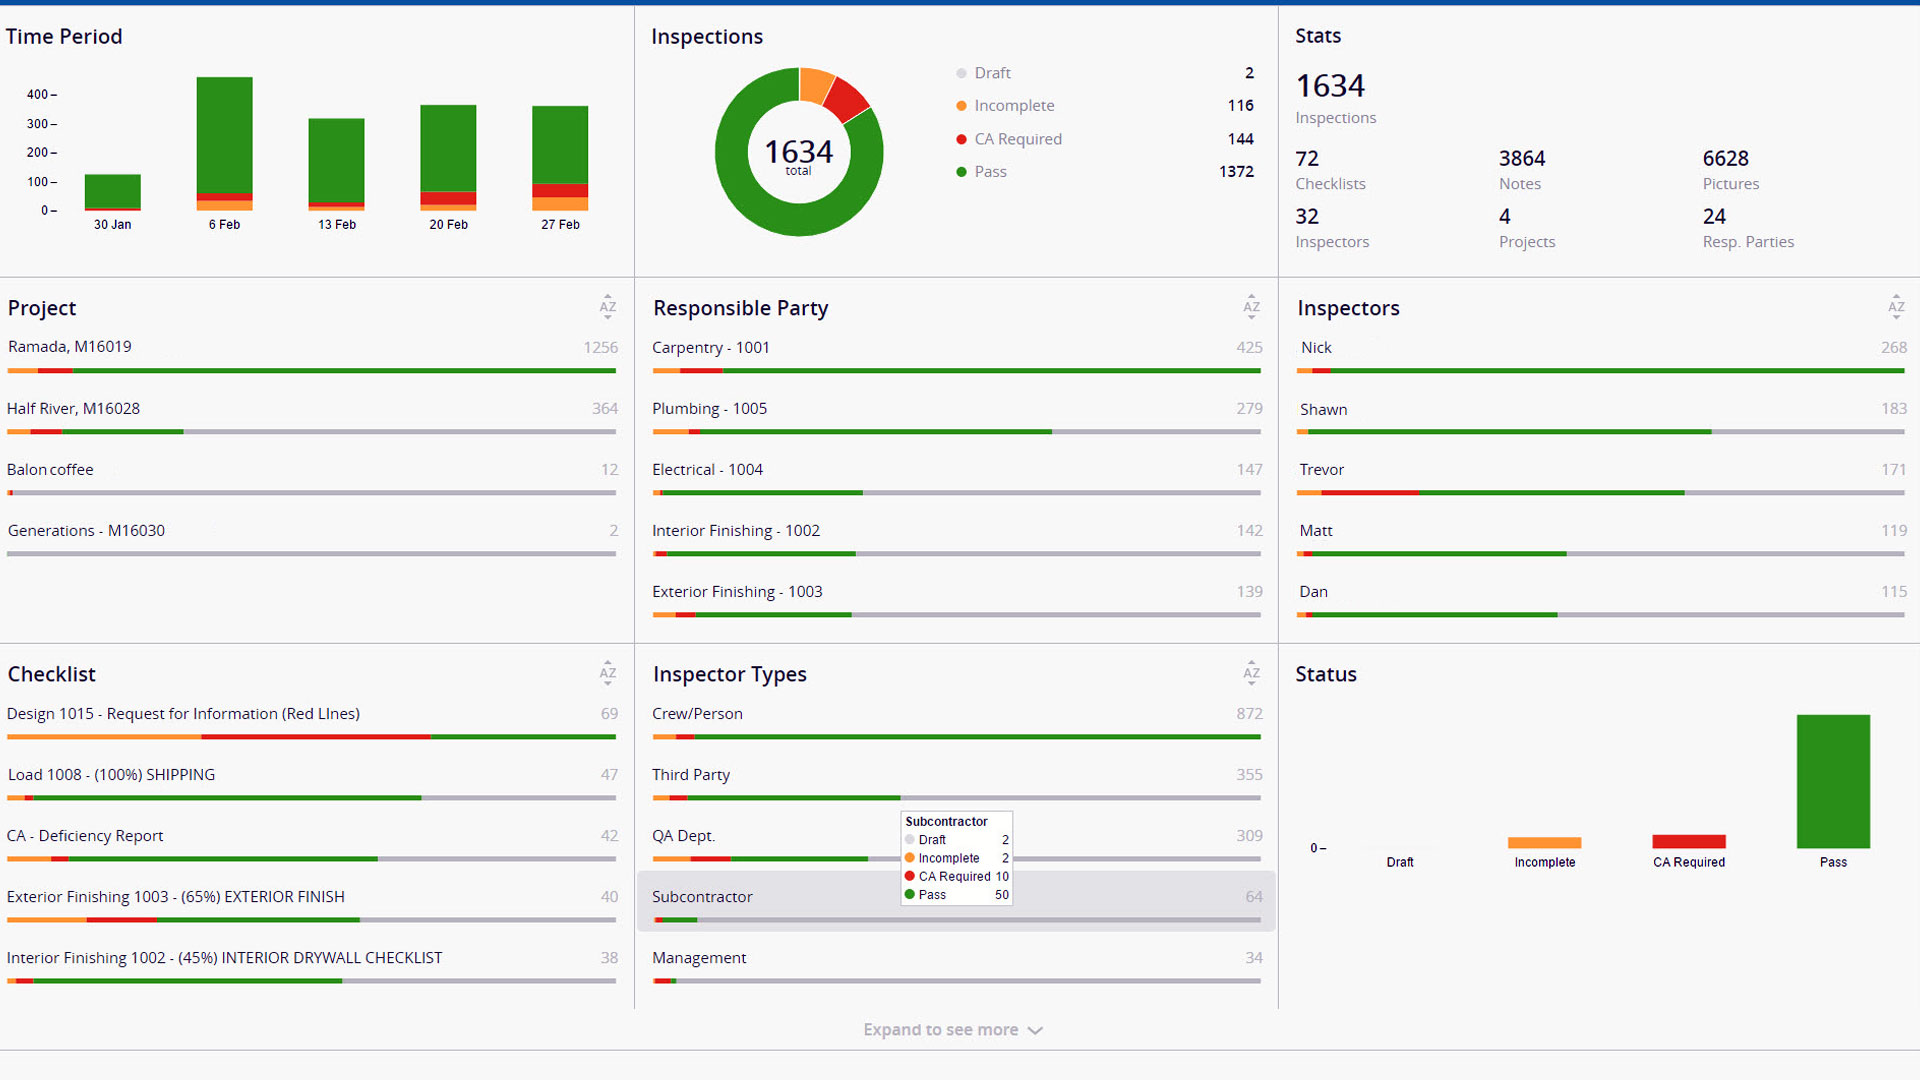 Ftq360 image2 inspction dashboard